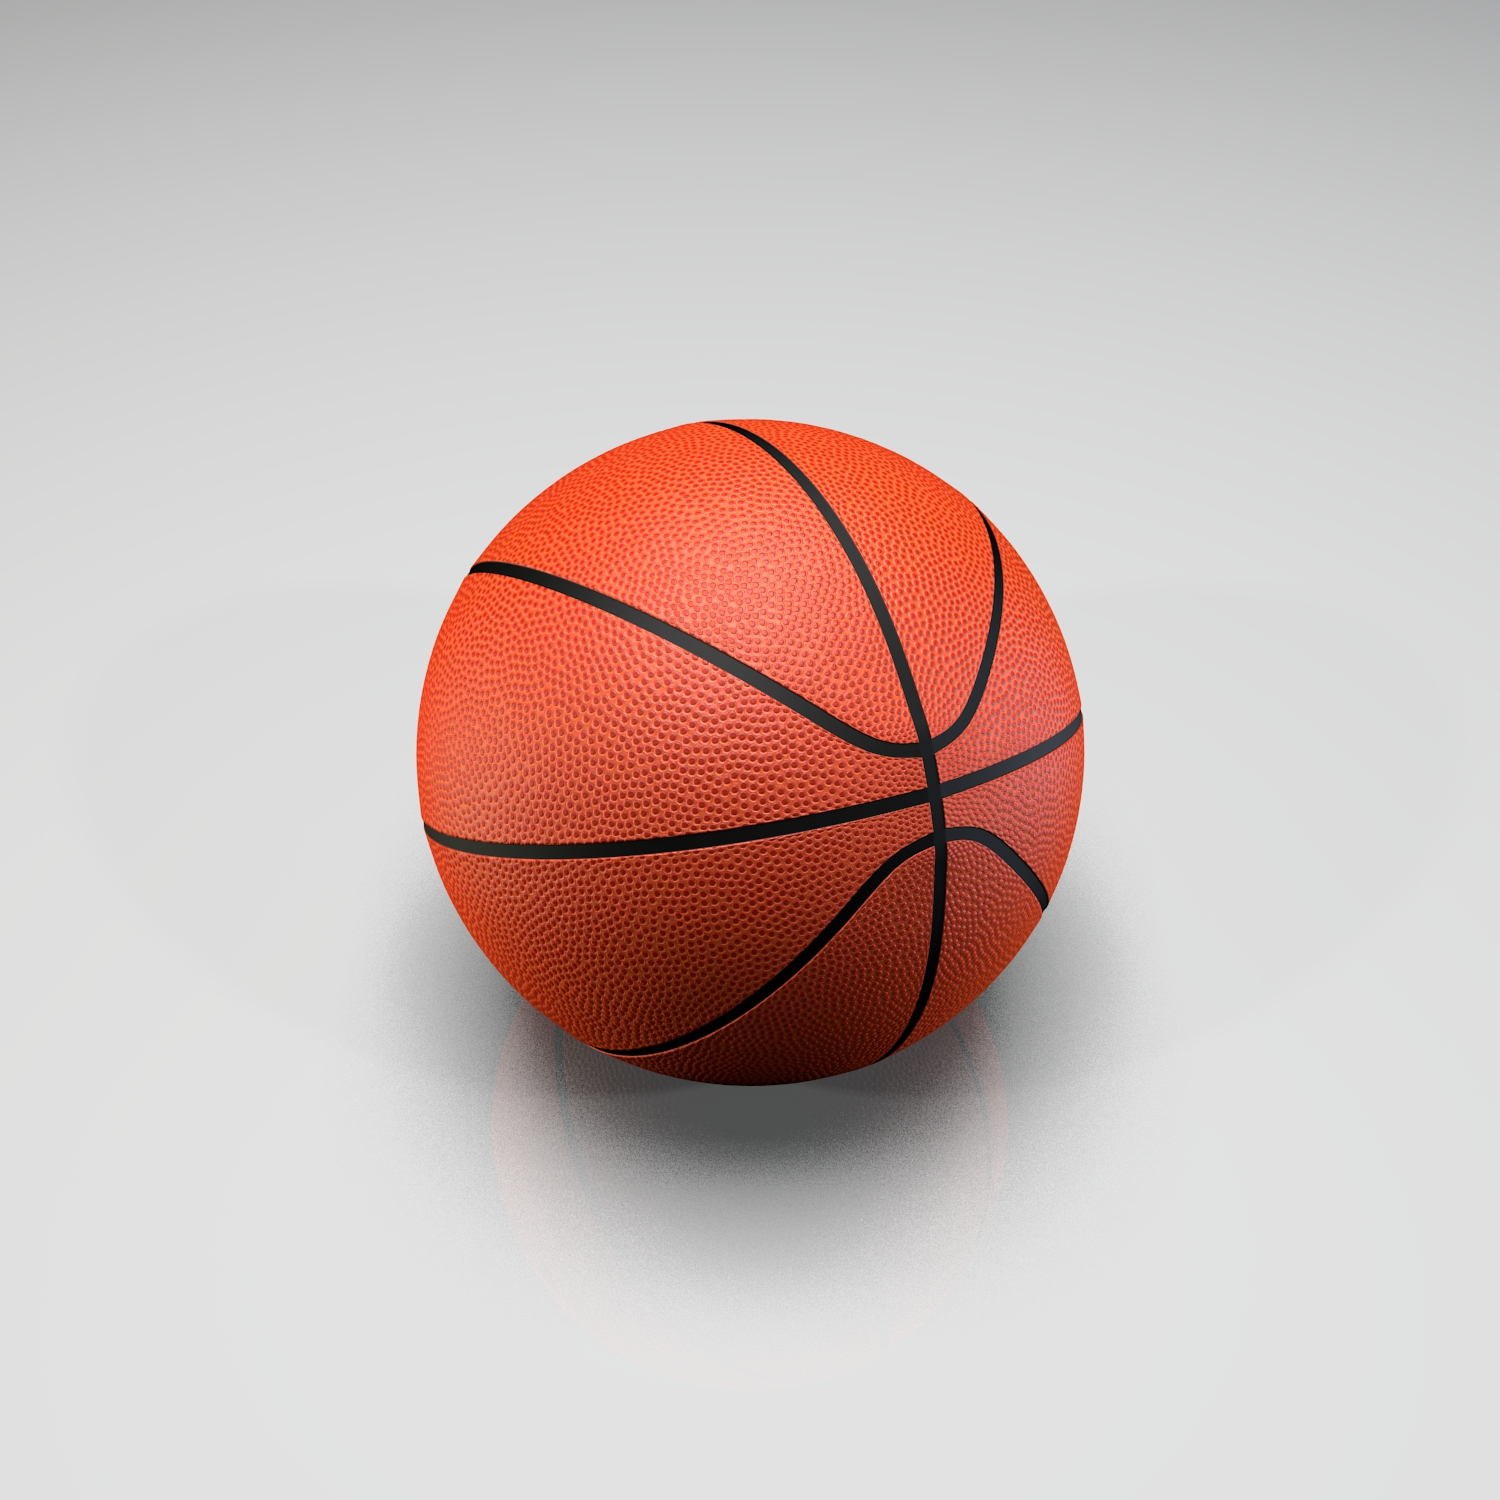 Basketball Ball 3D Model - FlatPyramid